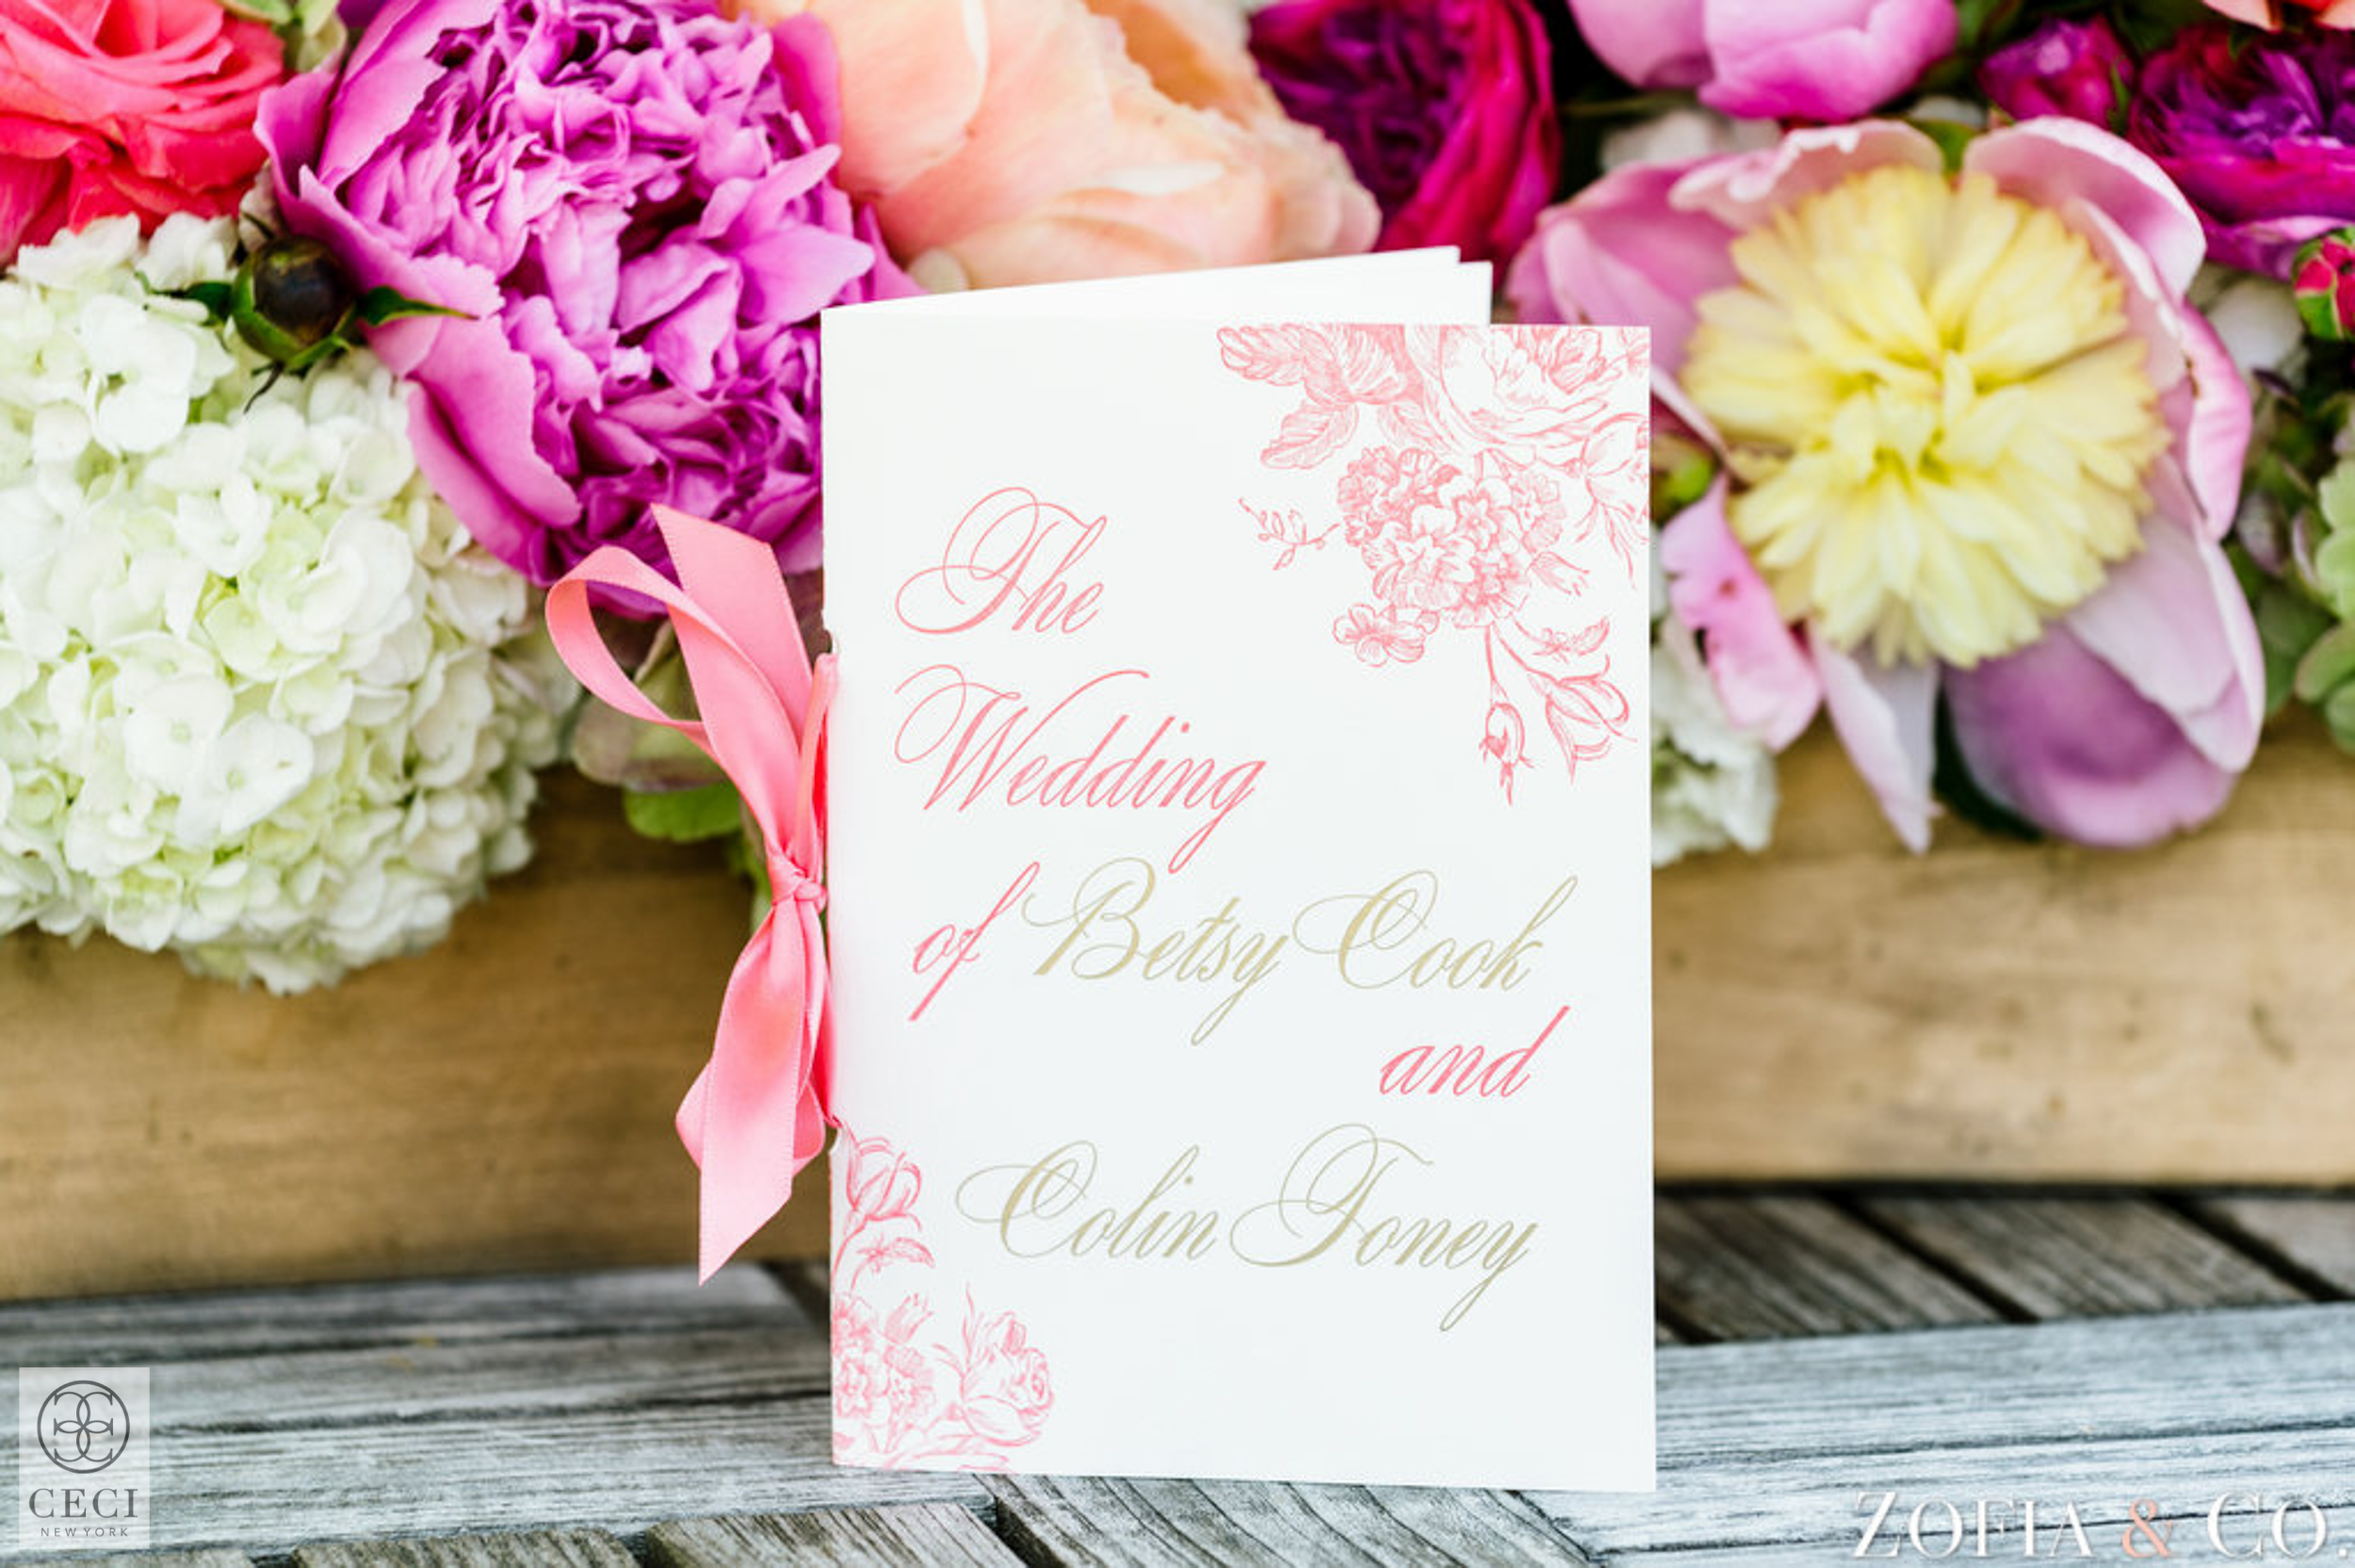 Ceci_New_York_Custom_Luxury_Wedding_LaserCut_Stationery_Personalized_Couture_Foil_Stamping_Black_Chic_-10 copy.jpg